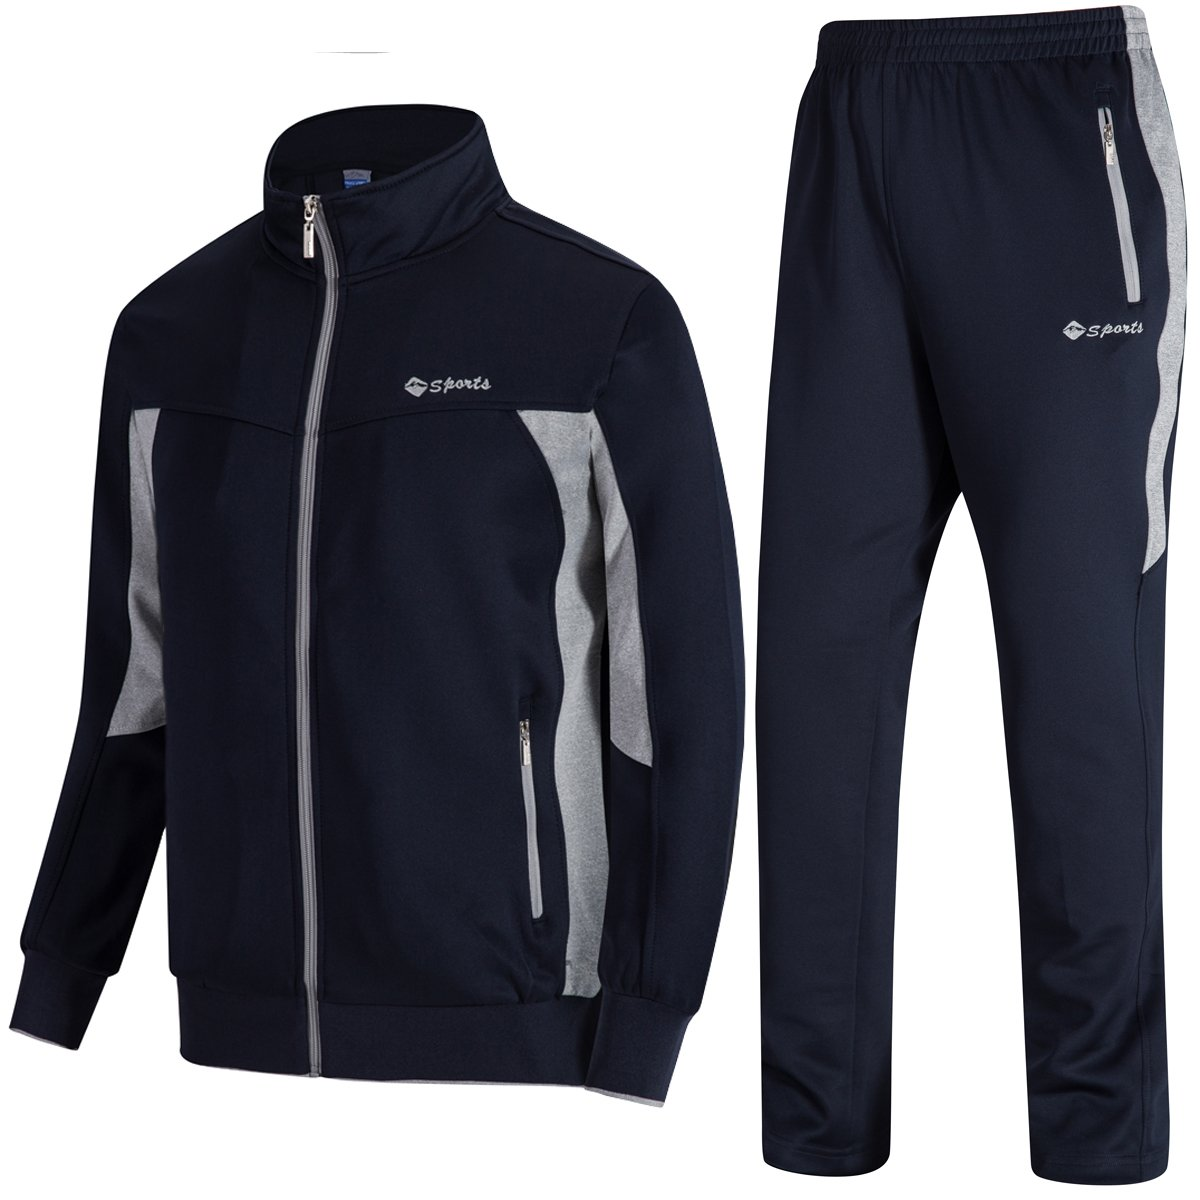 DUNKINBO Men's Athletic Tracksuit Full Zip Warm Jogging Sweat Suits (Blue grey,2XL)